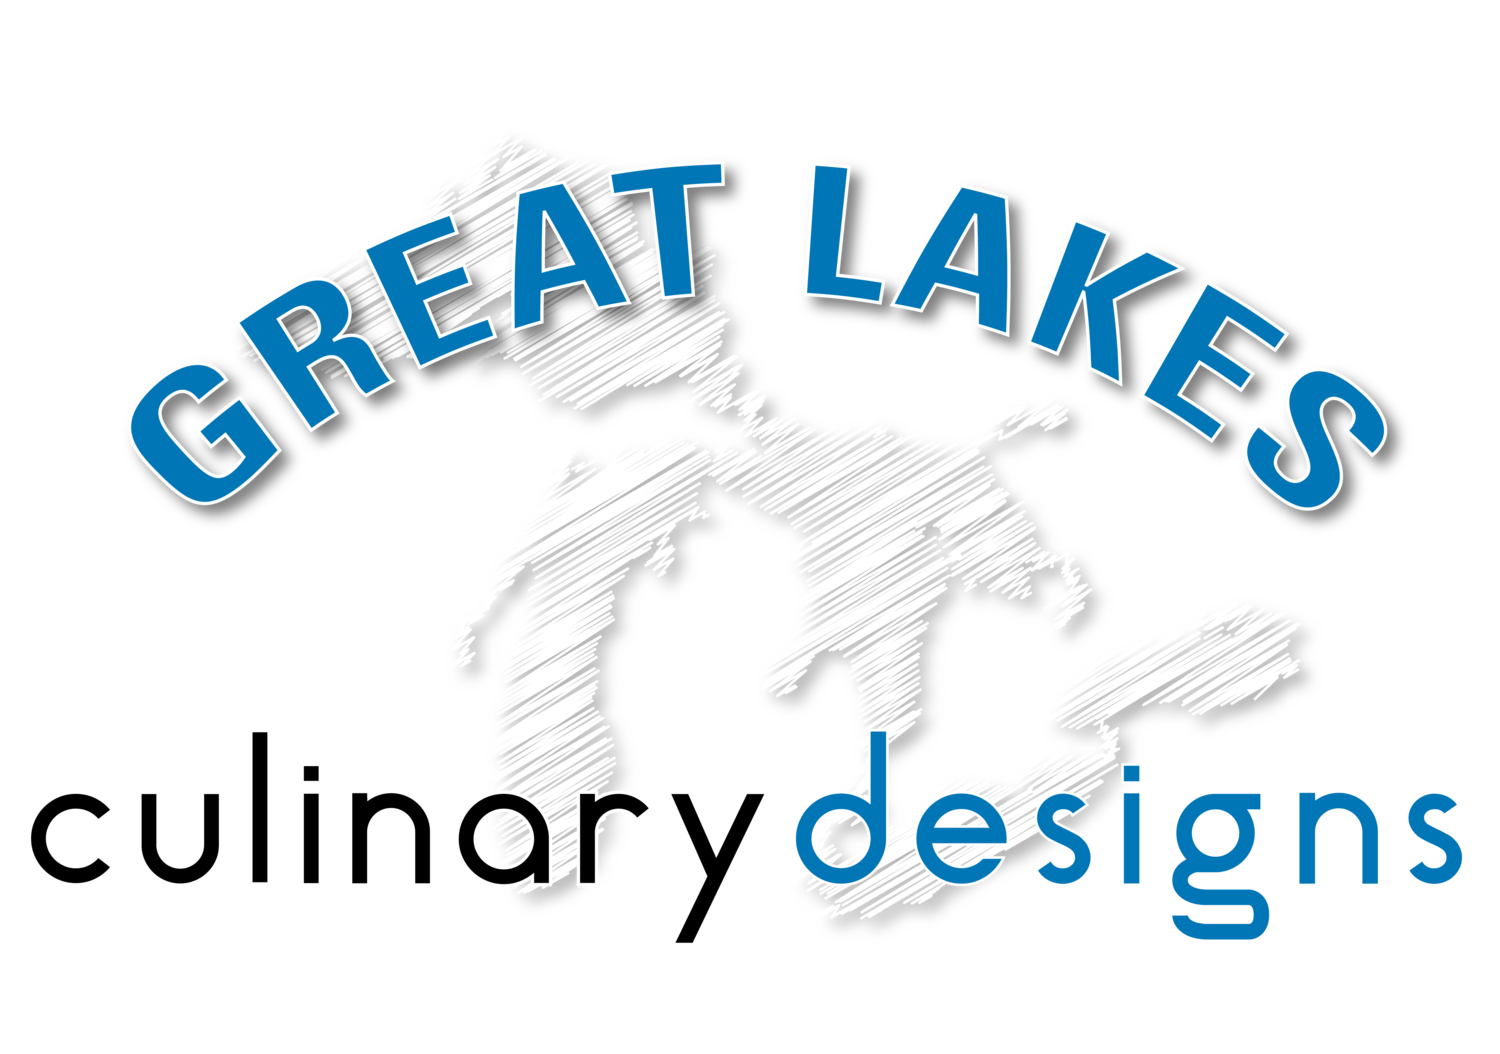 Great Lakes Culinary Designs